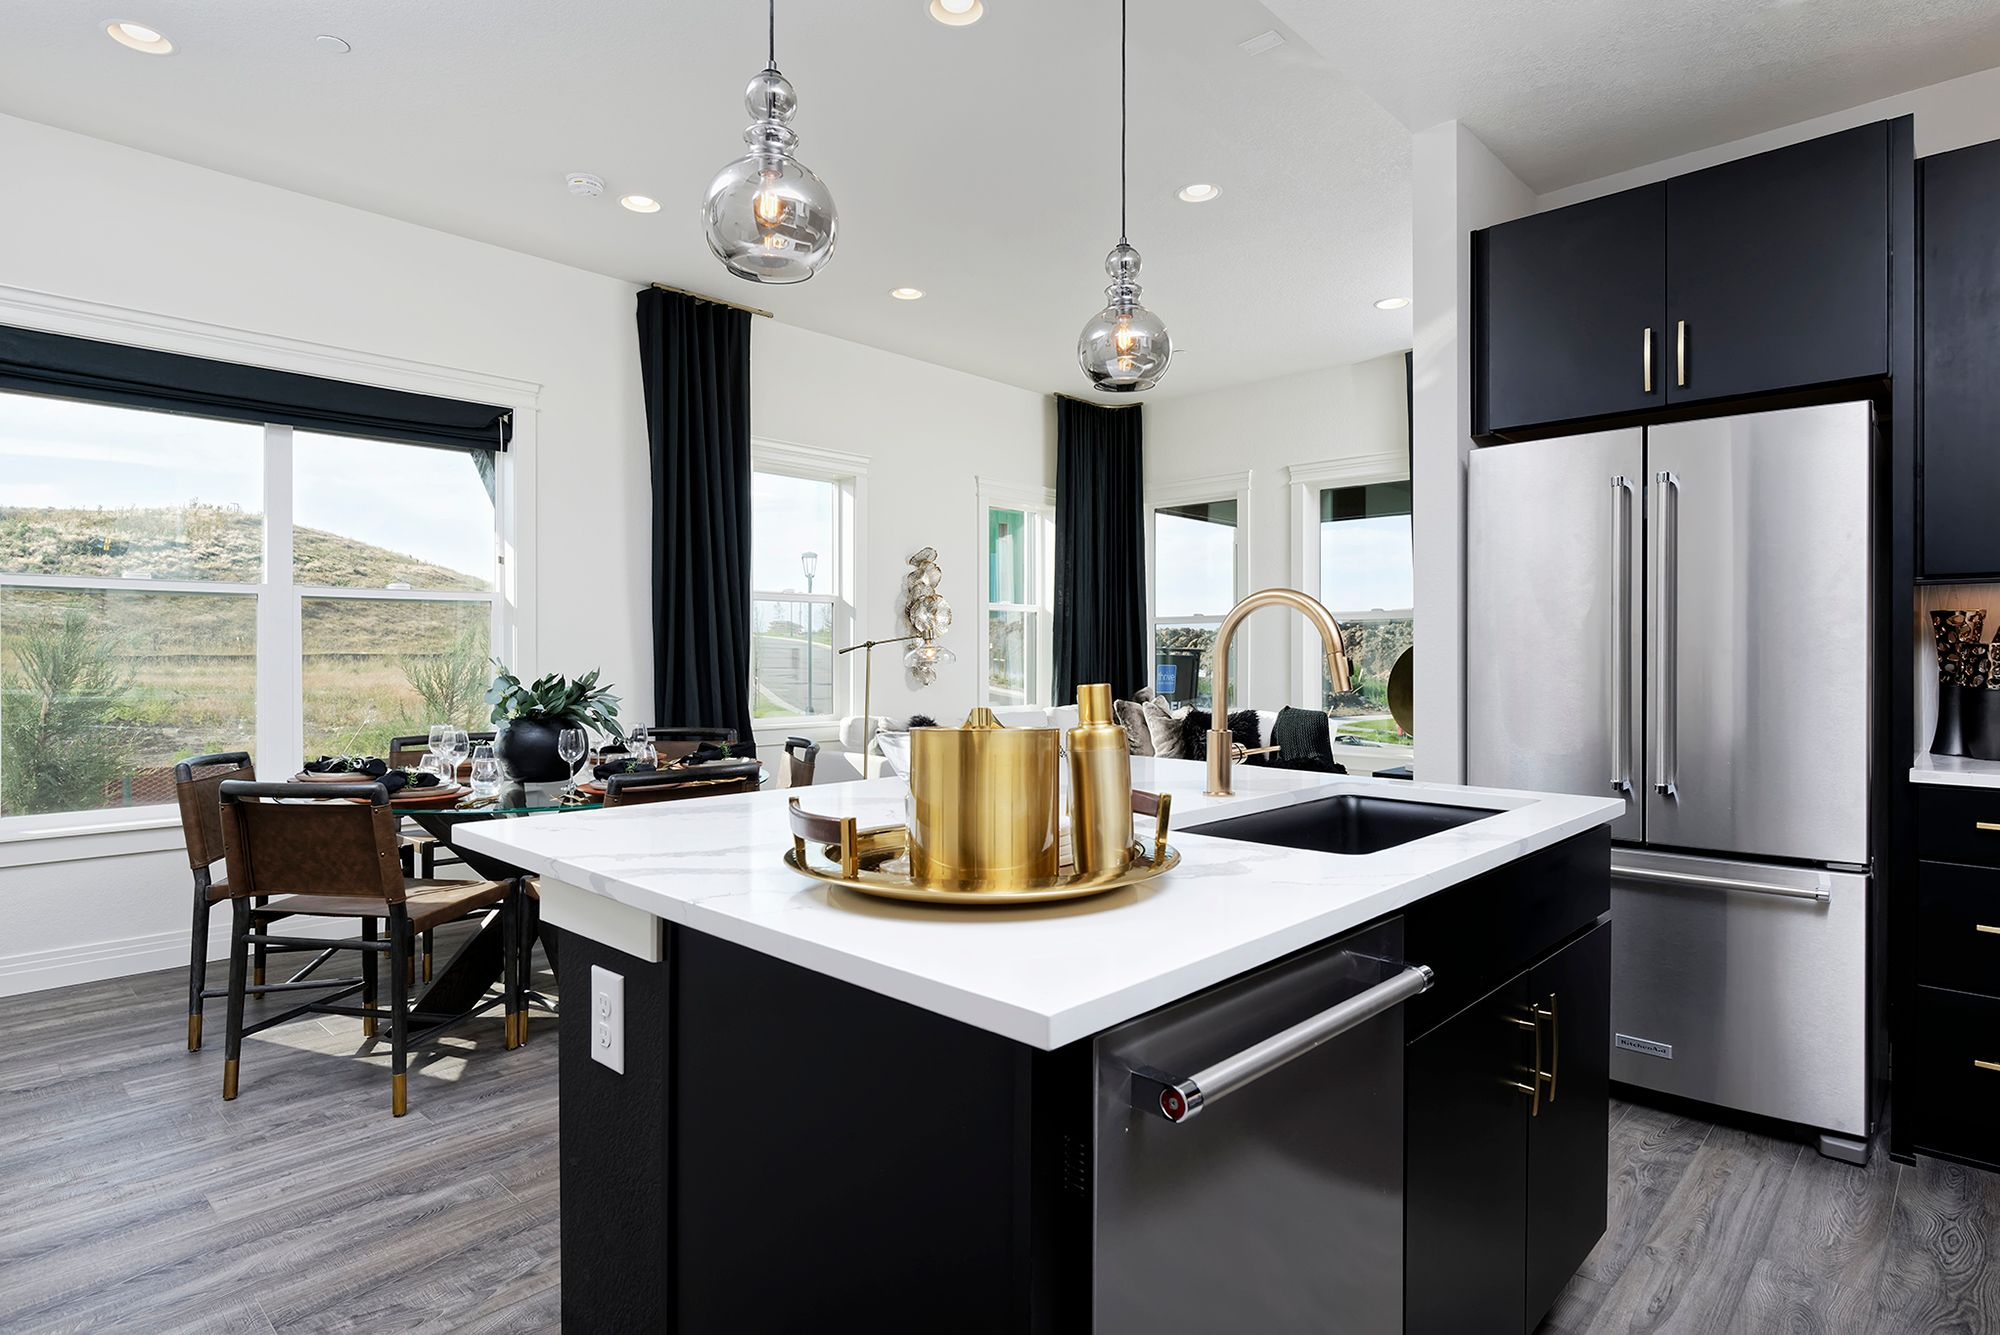 Living Area featured in the Insight By Thrive Home Builders in Boulder-Longmont, CO